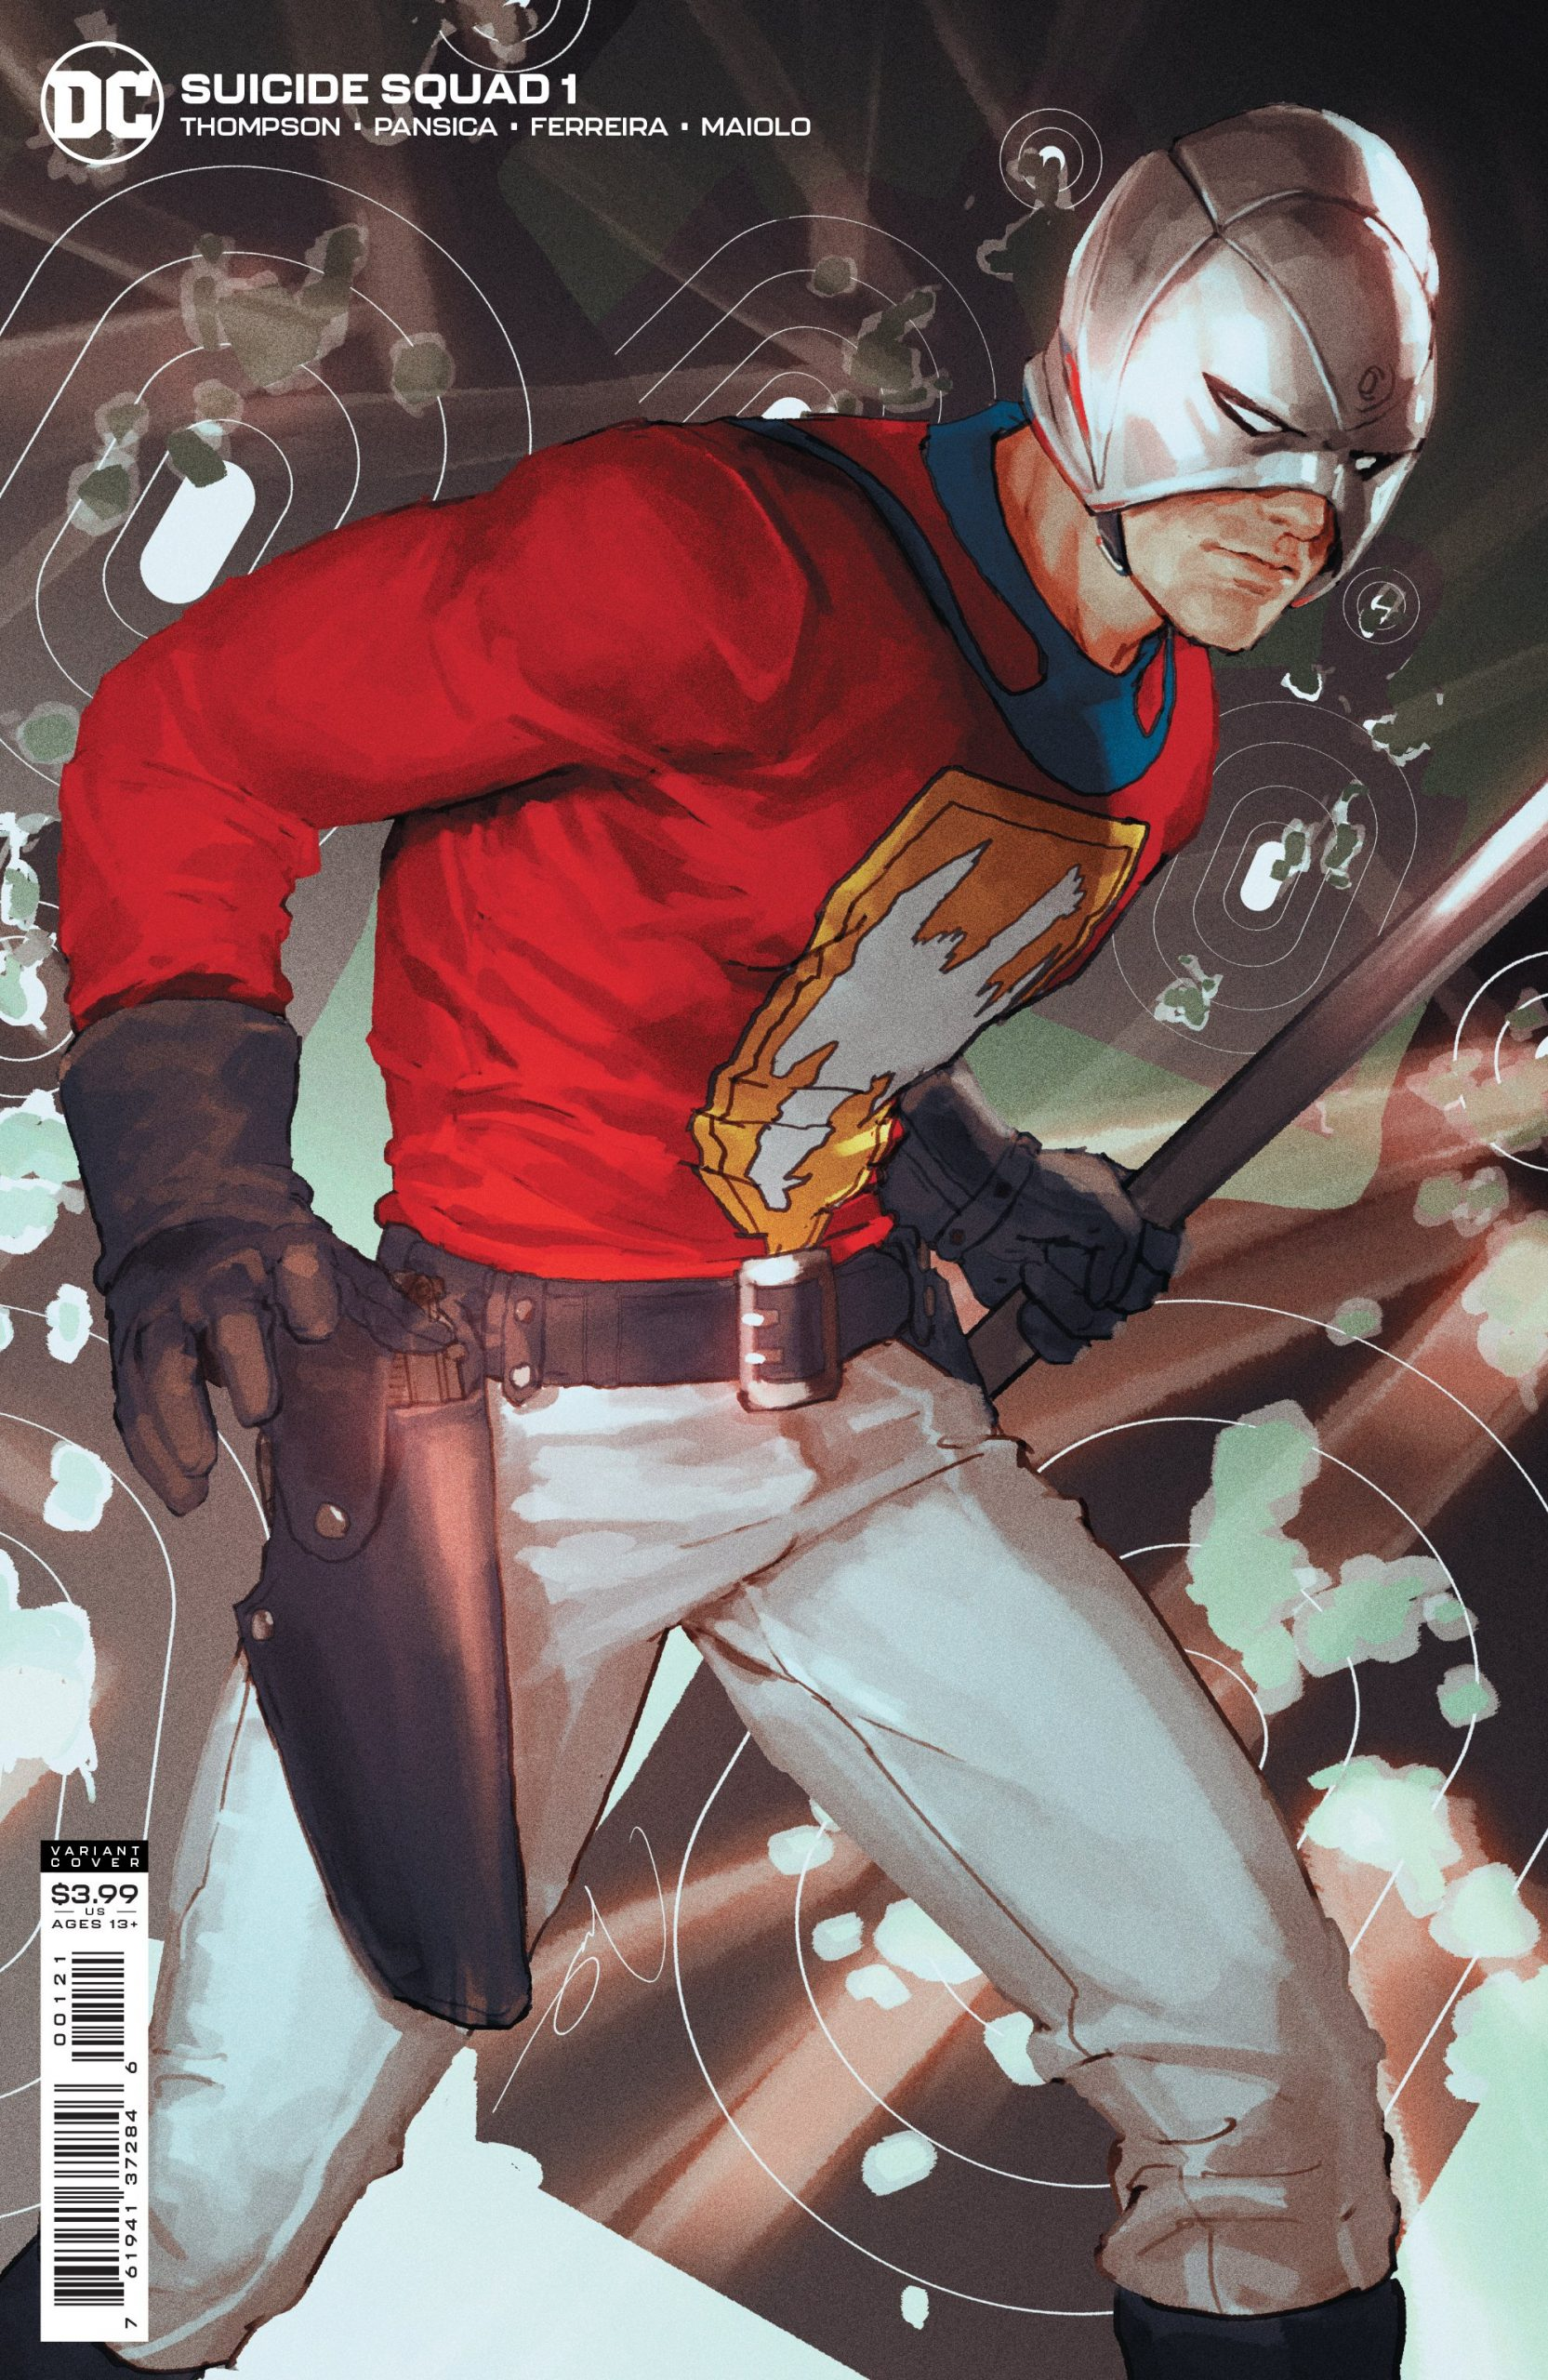 Suicide-Squad-1-variant-Infinite-Frontier-Peacemaker-scaled-1 Suicide-Squad-1-variant-Infinite-Frontier-Peacemaker-scaled-1